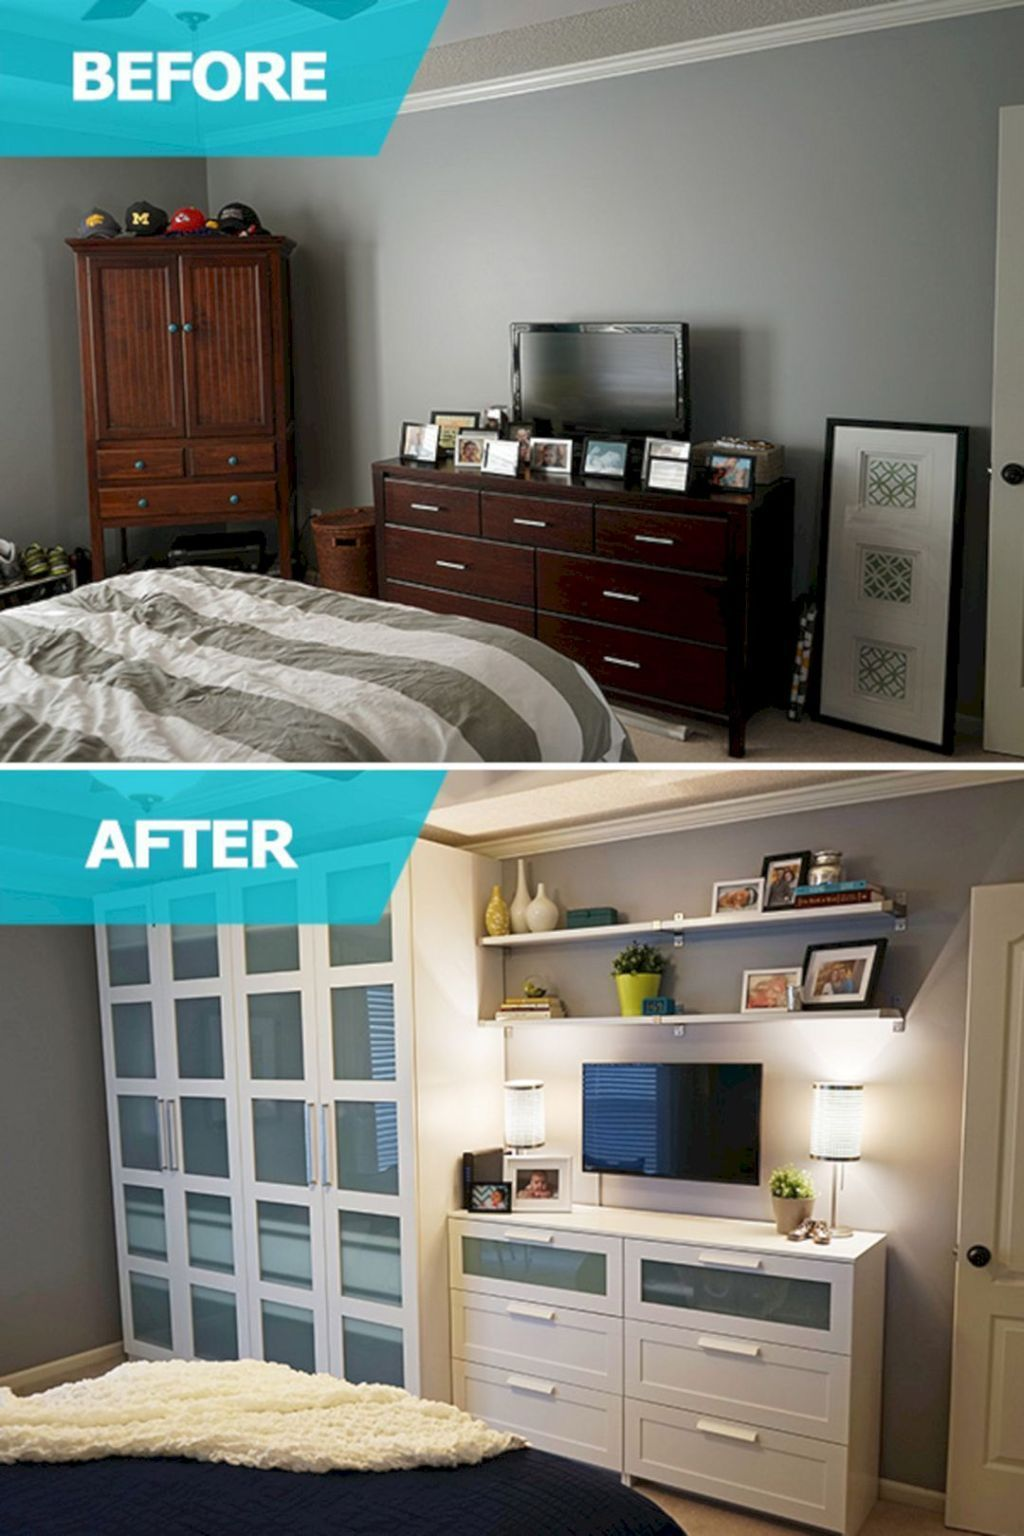 8 Storage Ideas For Small Spaces Bedroom Most of the Amazing and